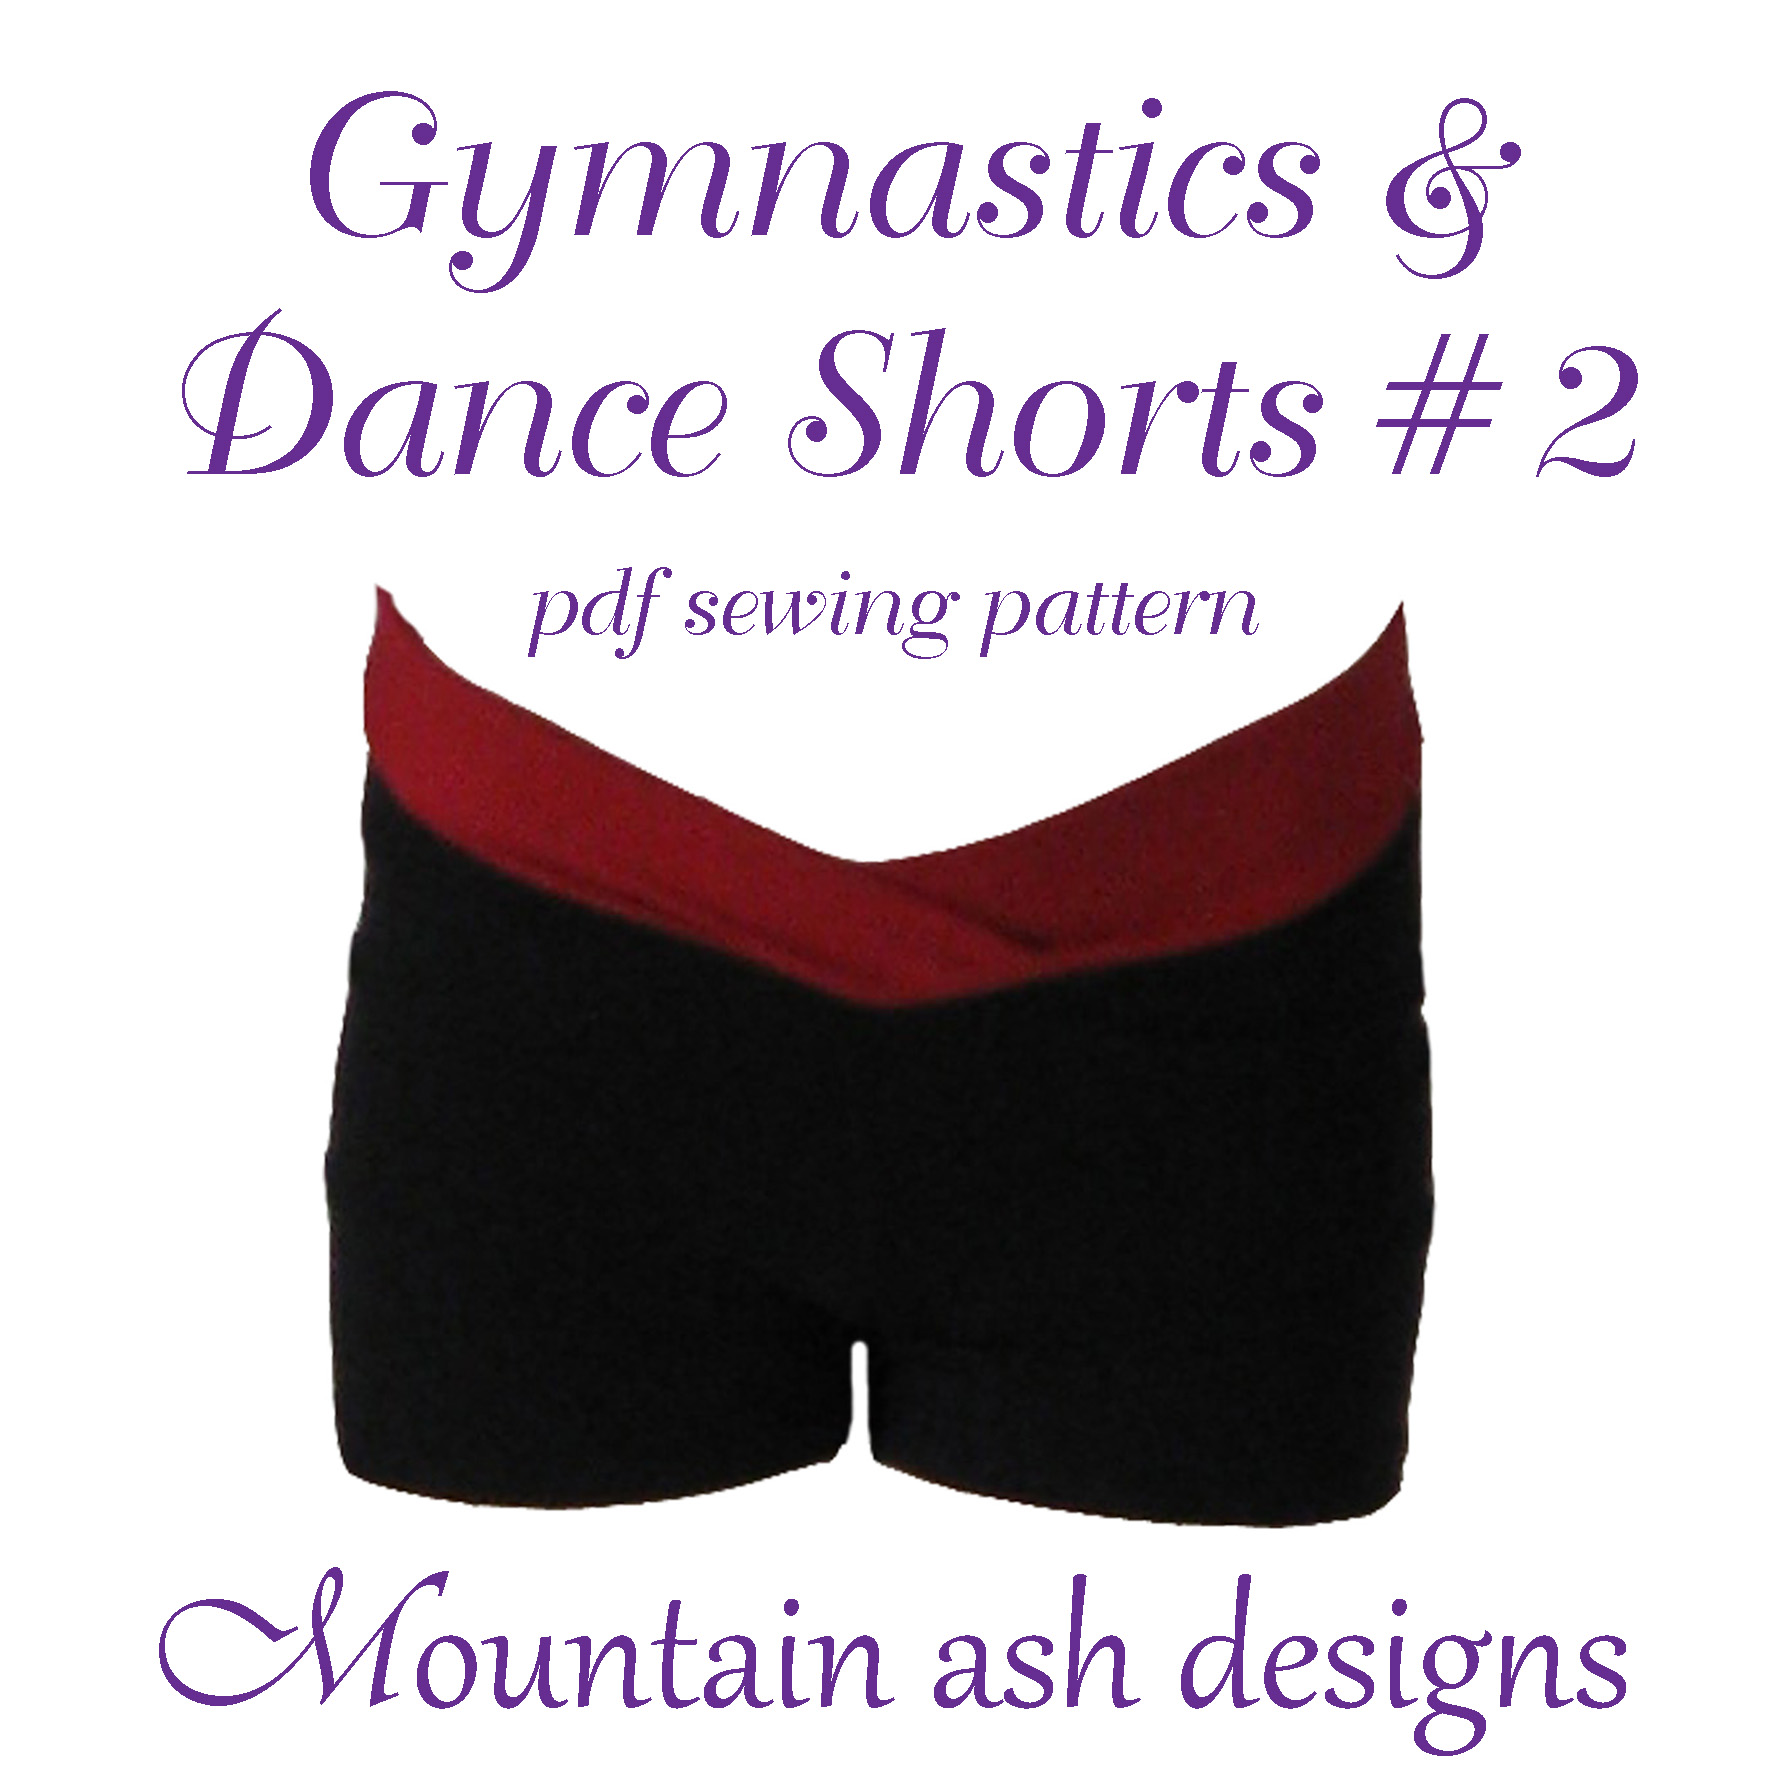 Gymnastics and Dance Shorts 2 Ladies Sizes Sewing Pattern